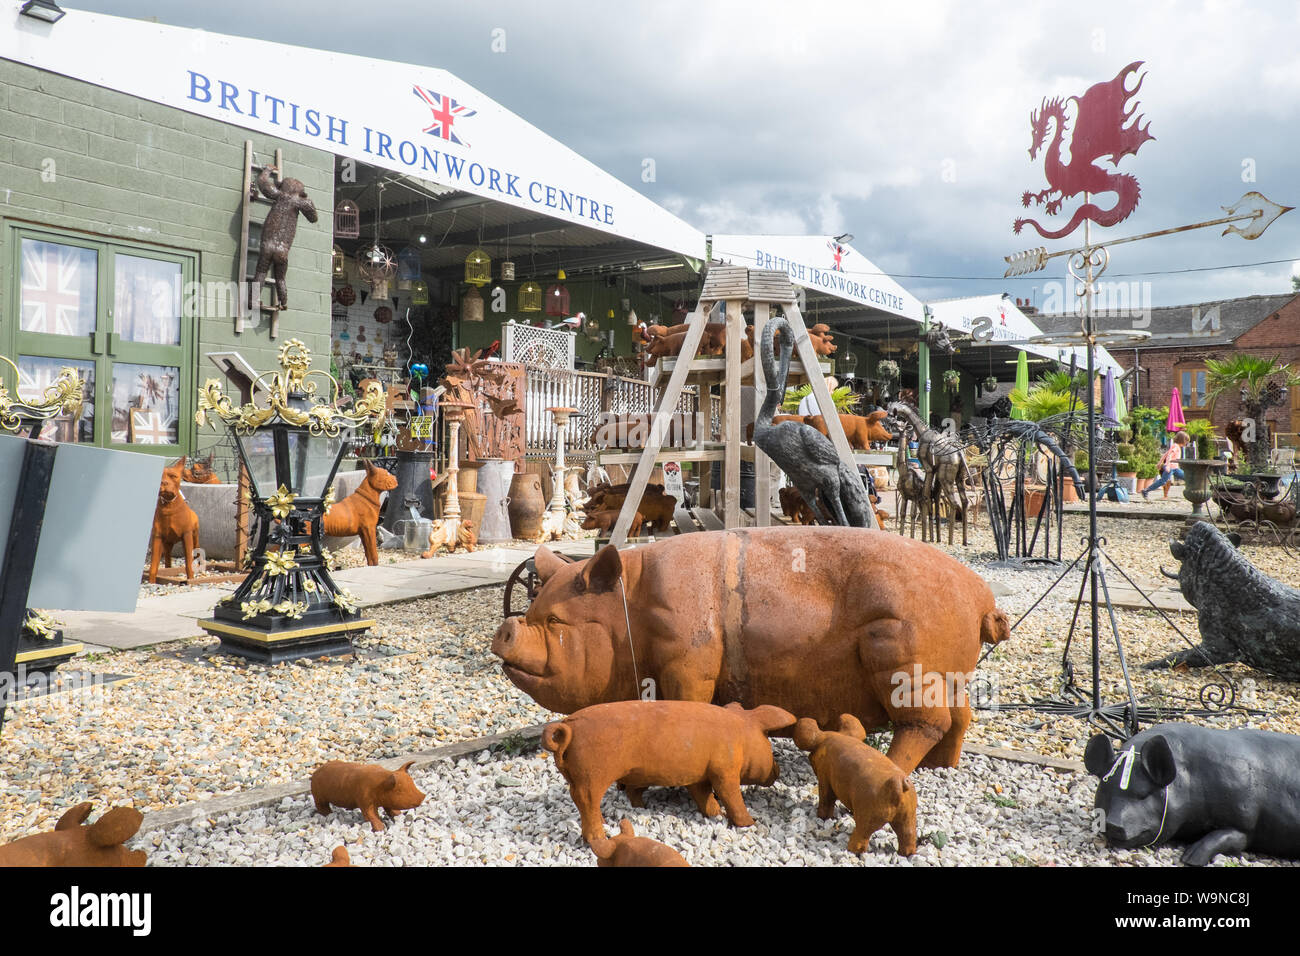 British Ironworks Centre and Shropshire Sculpture Park,off A5 road,Morda,Oswestry,Shropshire,England,Wales,Welsh,border,UK,GB,English,British, Stock Photo